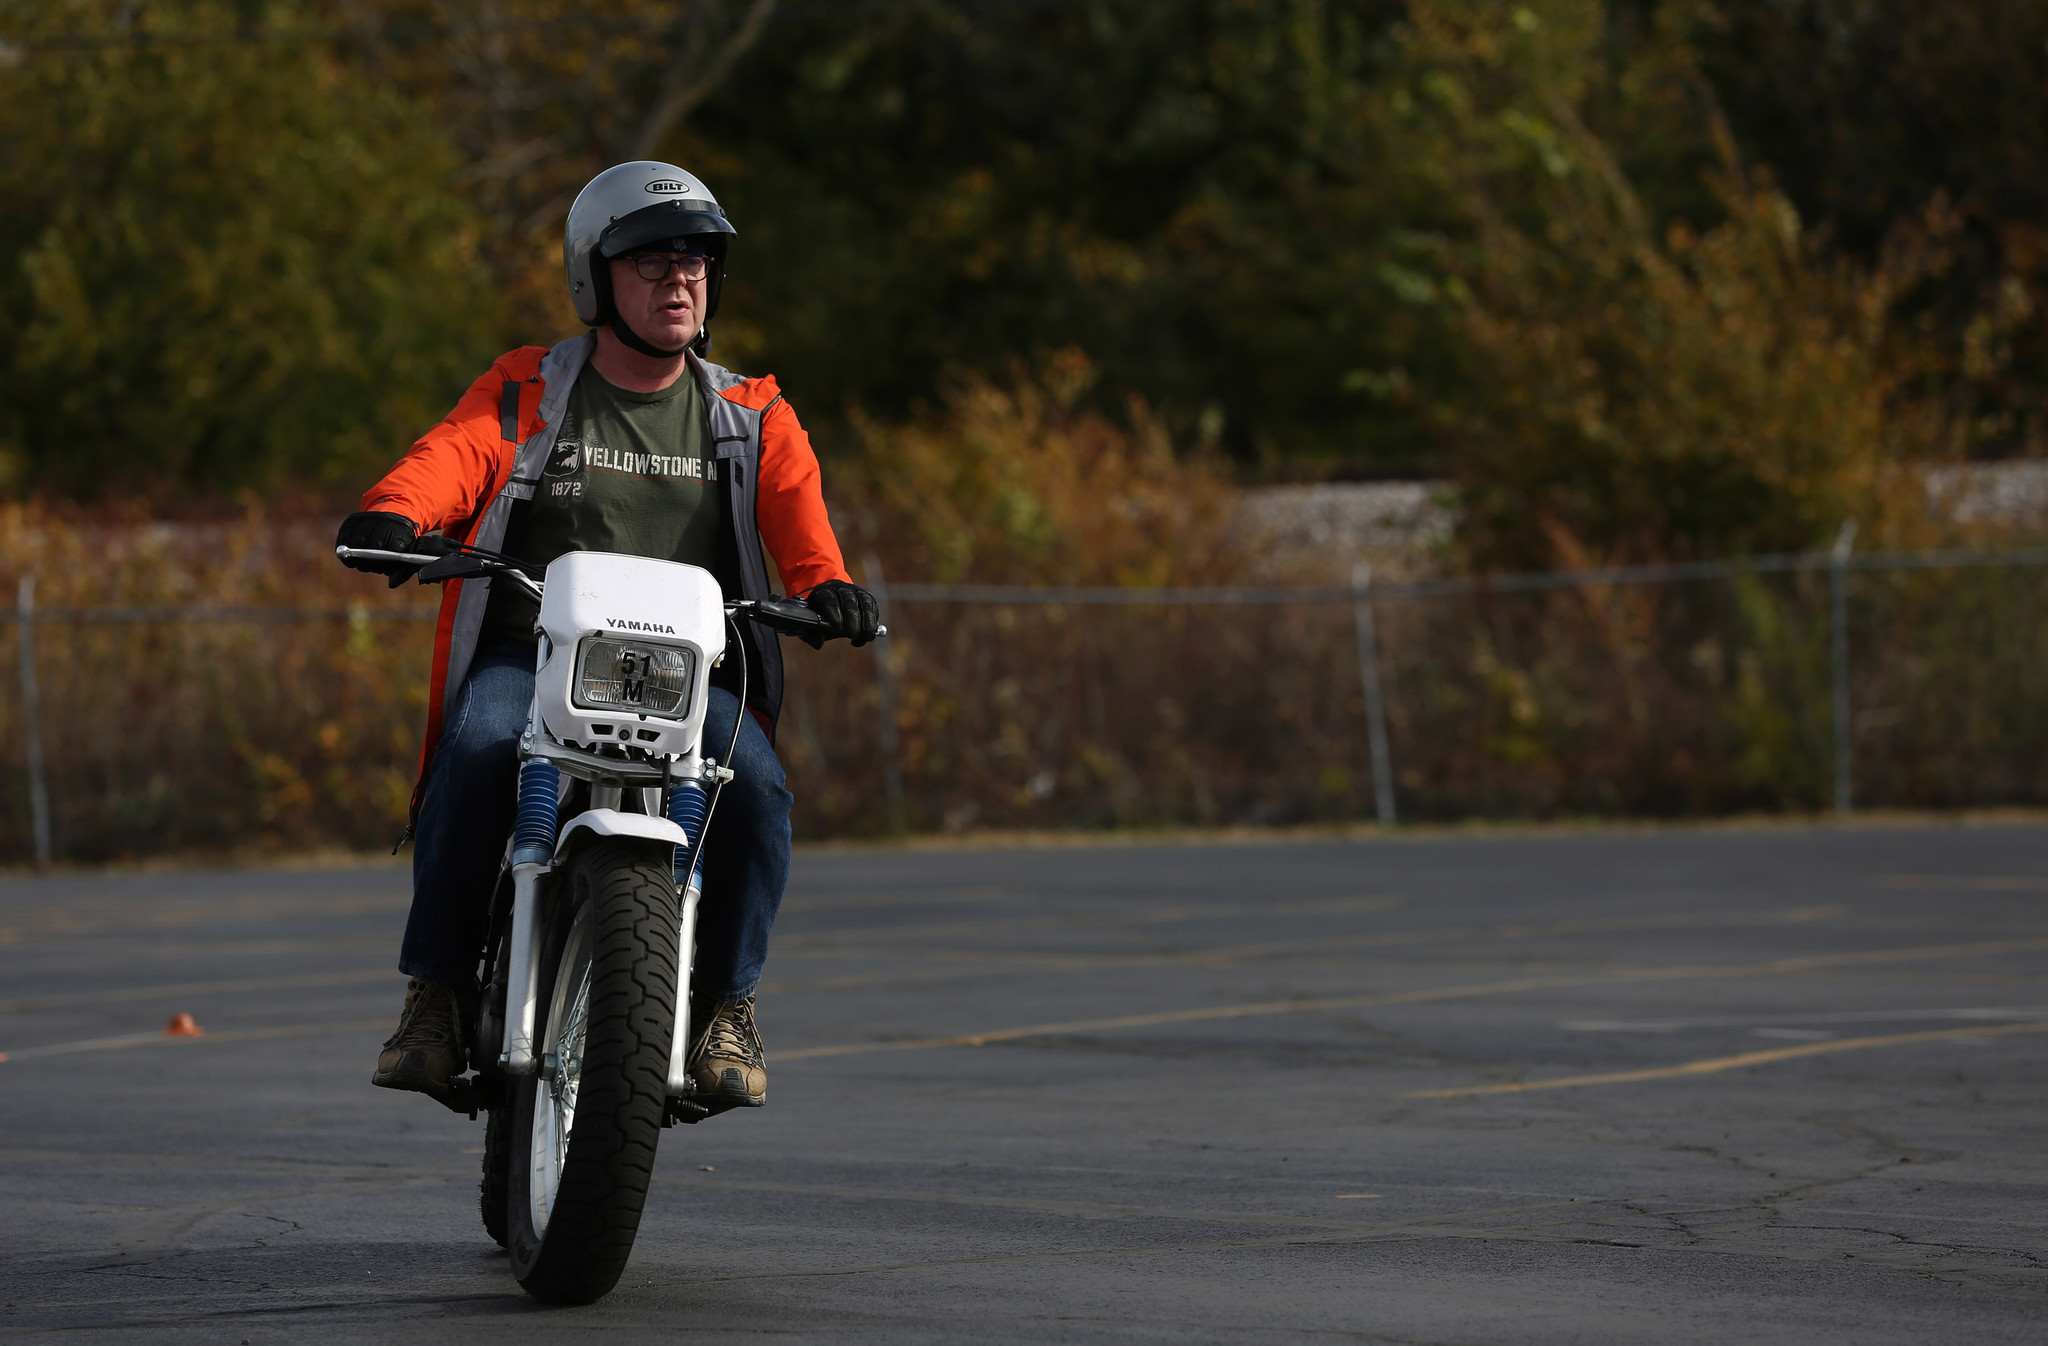 The perils of nostalgia: Older motorcyclists most likely to die in